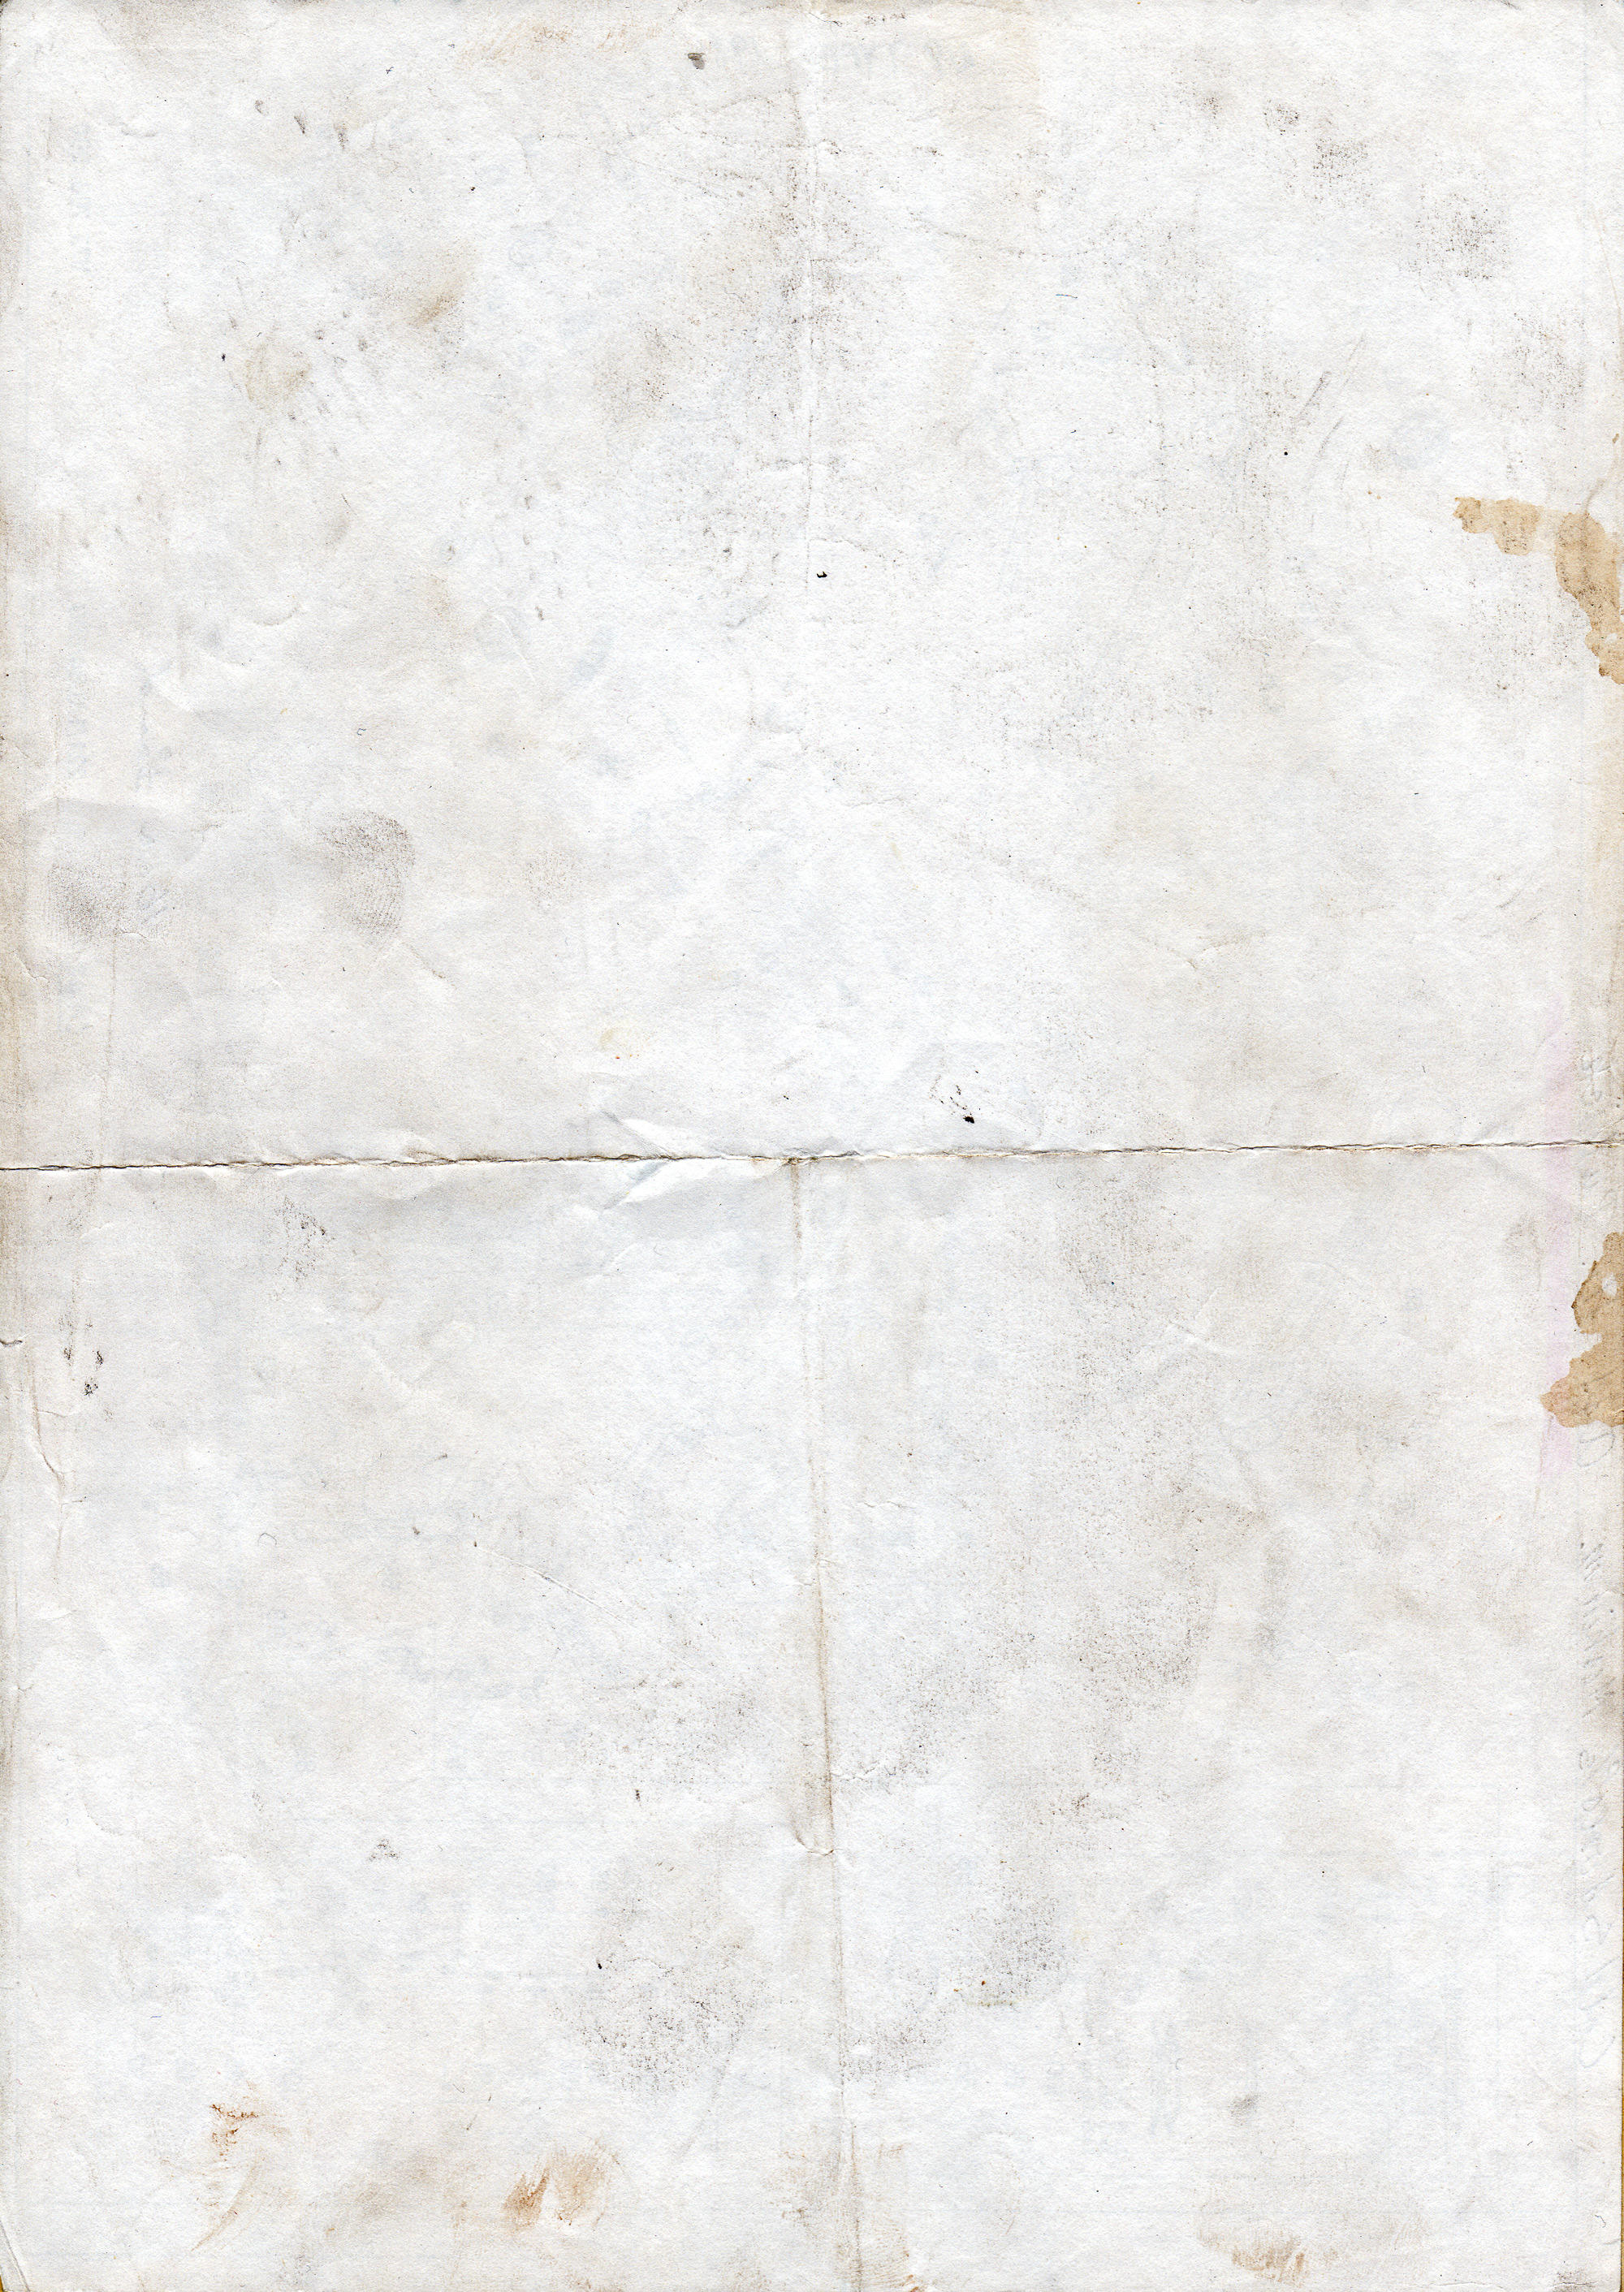 Grungy paper texture v.6 by bashcorpo